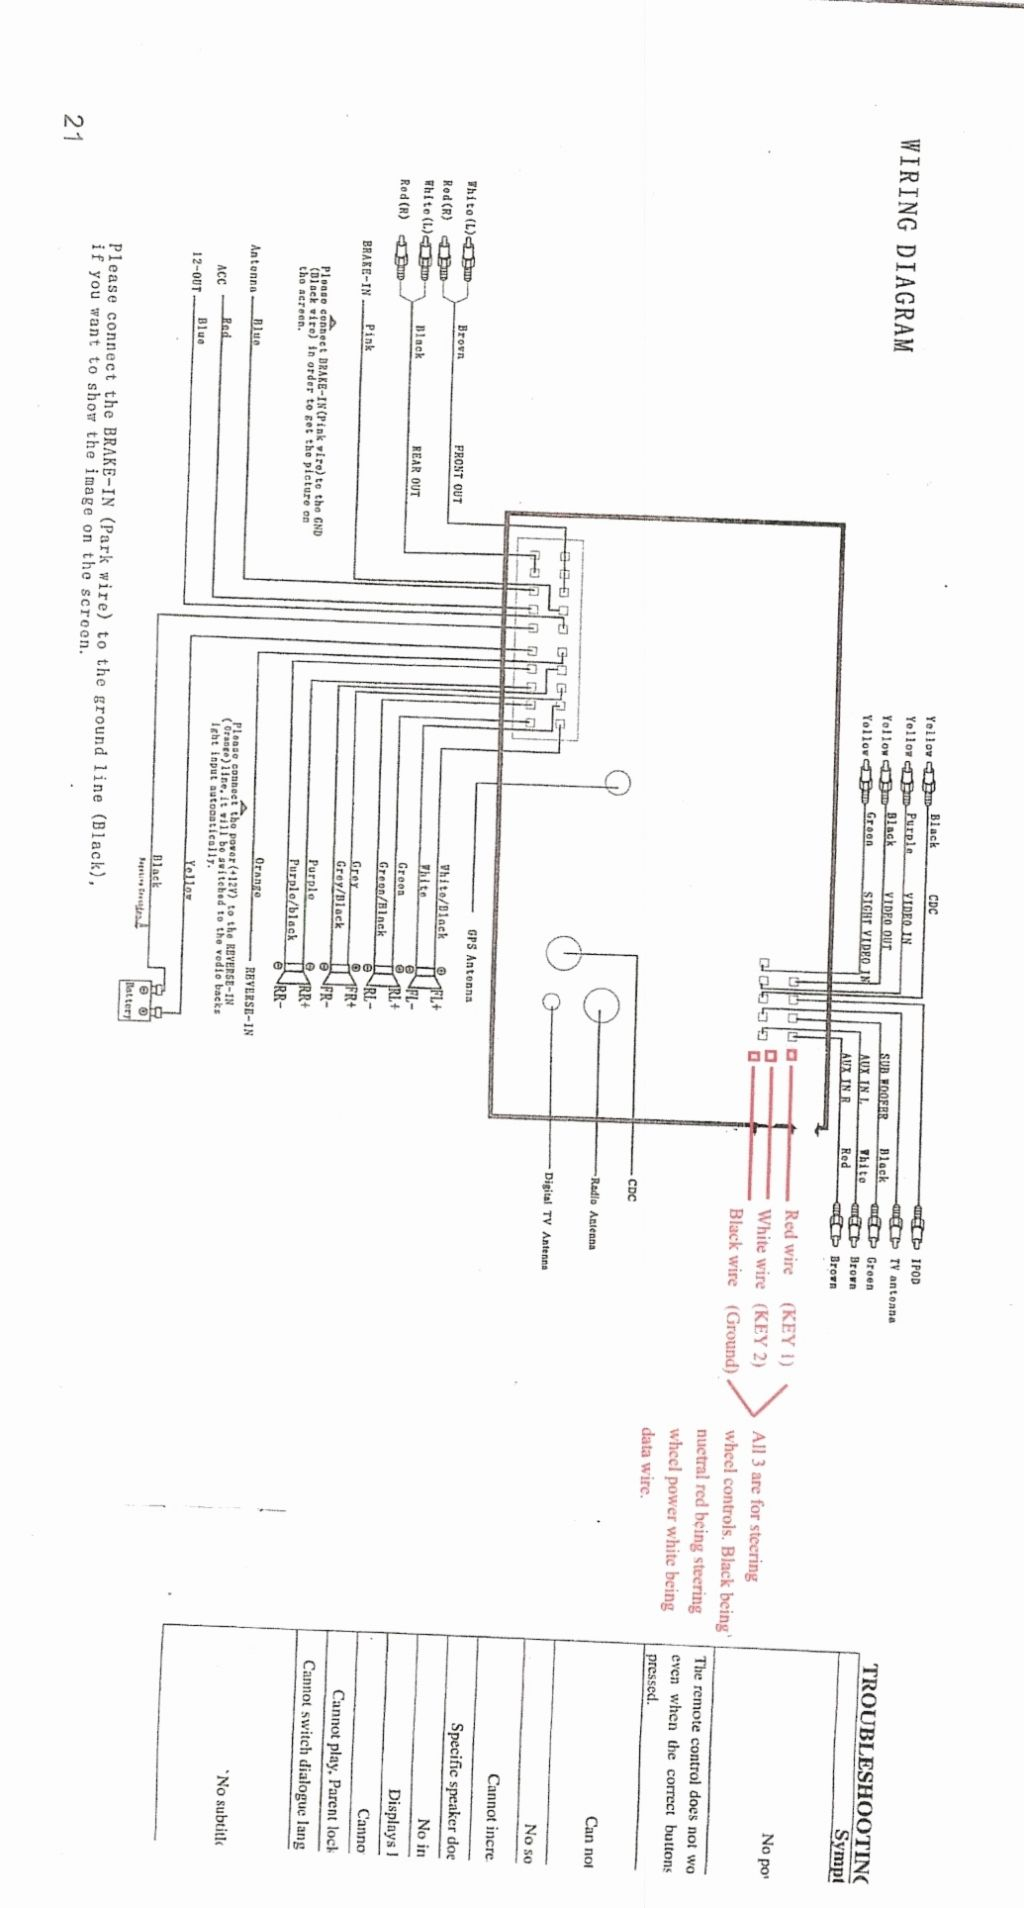 axxess aswc 1 wiring diagram kenwood